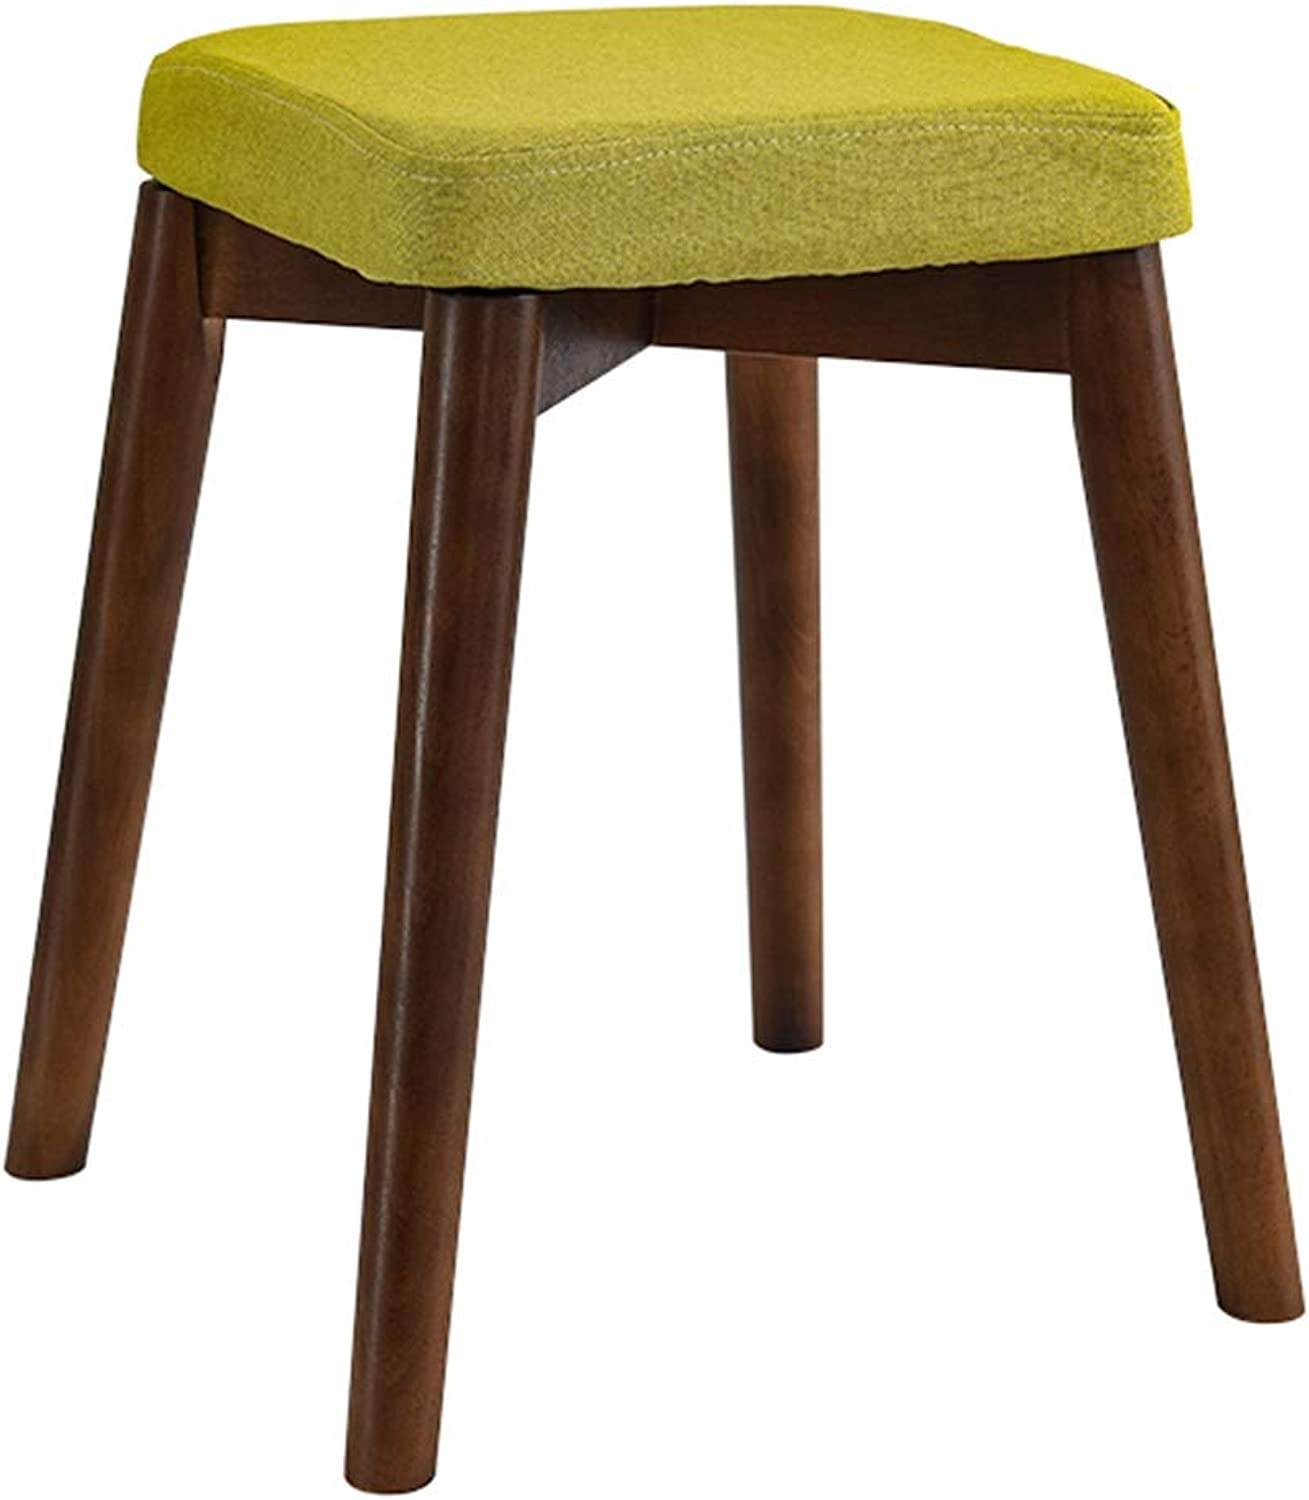 LJFYXZ Dining Chairs Natural Cotton and Linen Removable Design Dressing Stool Kitchen Restaurant X Structure Solid Wood Bracket Home Dining Table Stool (color   Green)